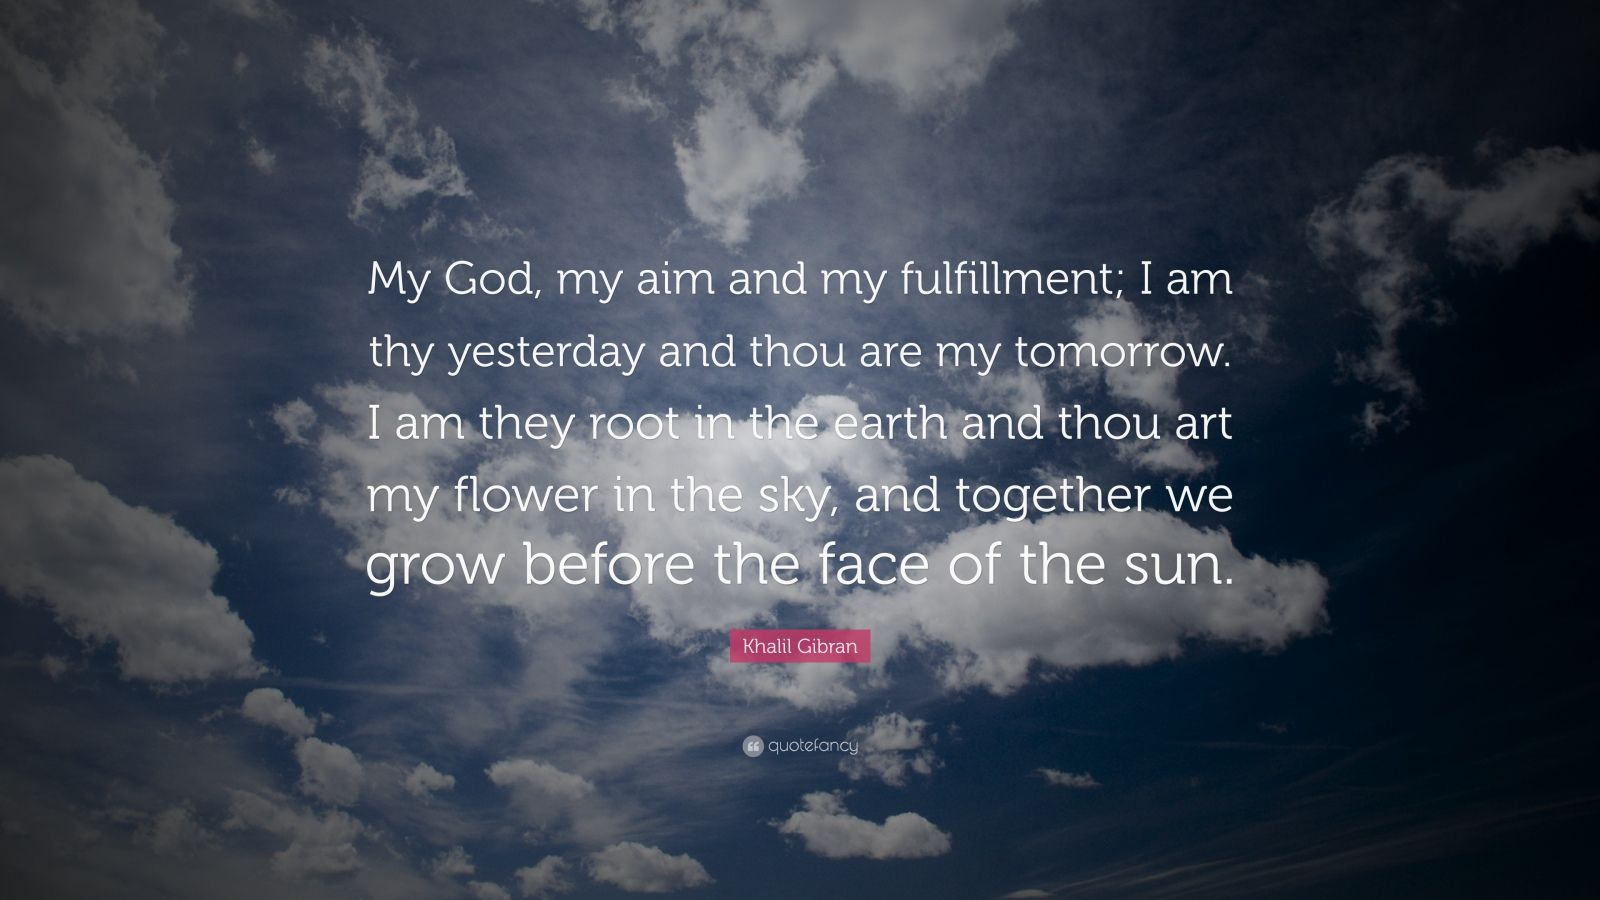 """Khalil Gibran Quote: """"My God, my aim and my fulfillment; I am thy yesterday and thou are my tomorrow. I am they root in the earth and thou art my flower in the sky, and together we grow before the face of the sun."""""""